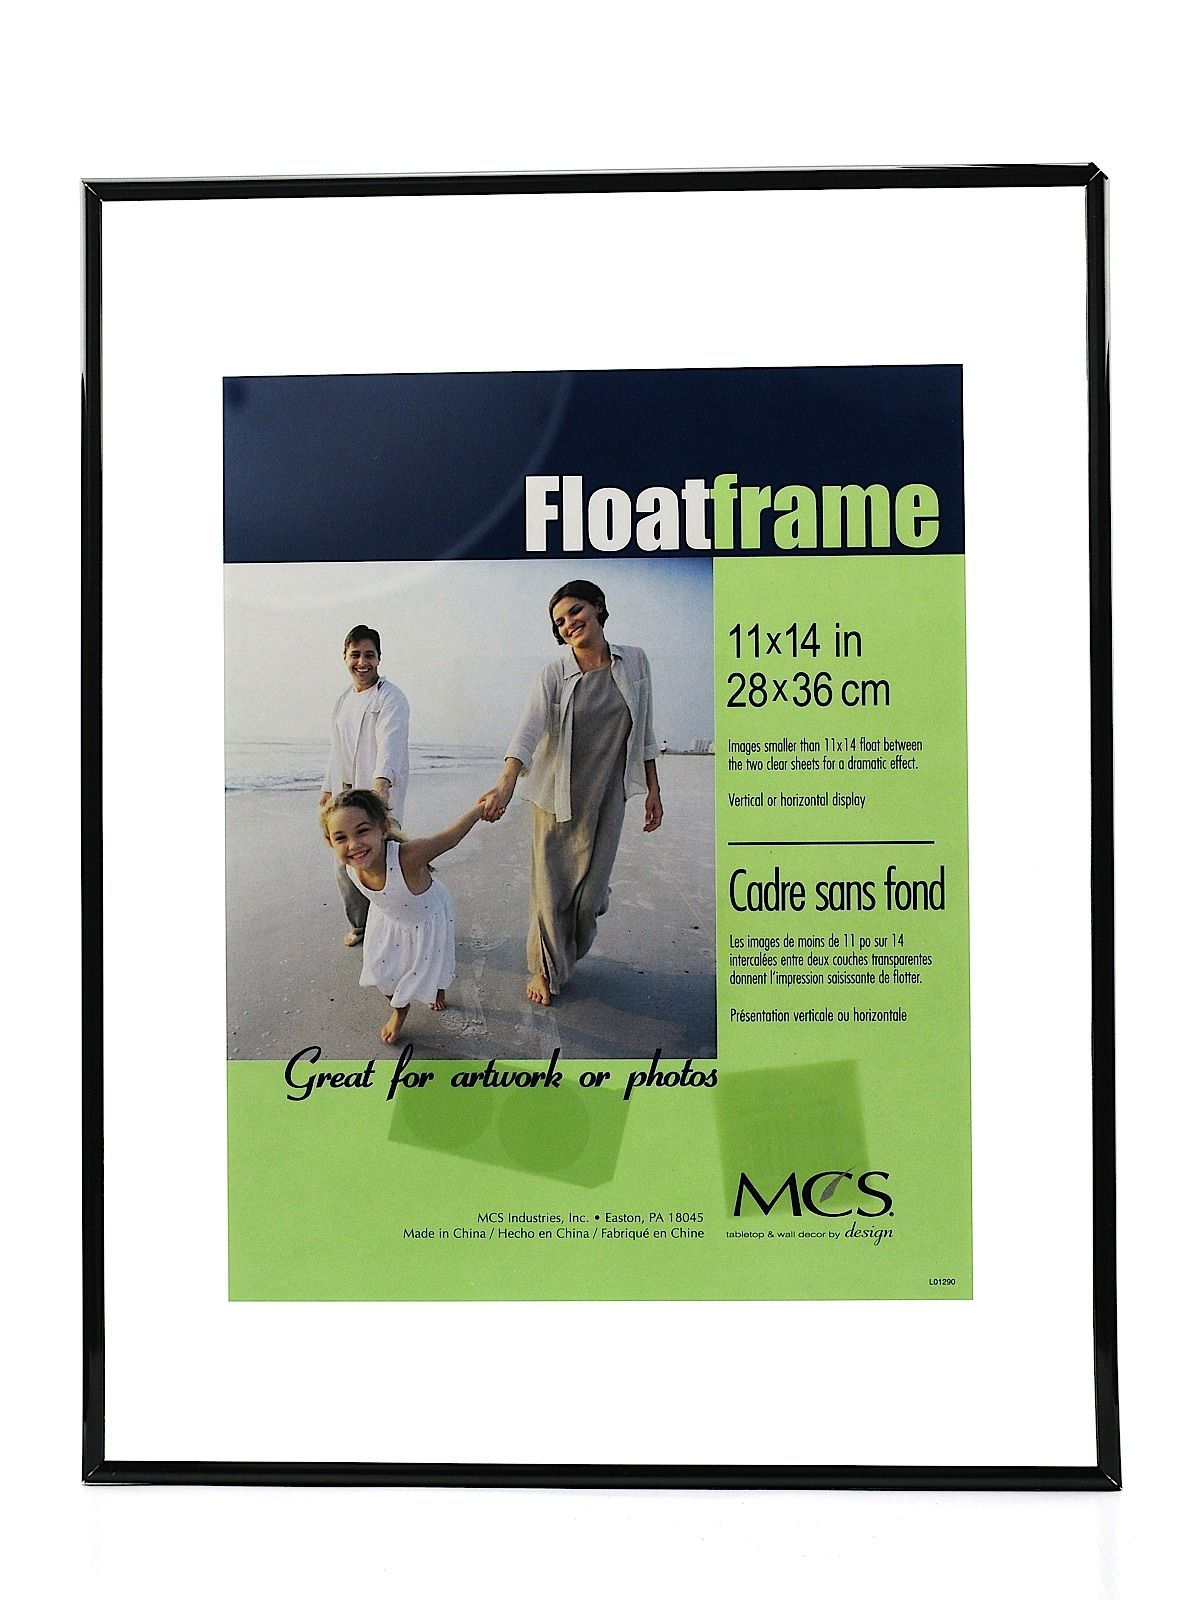 Mcs Original Float Frame Ad Supplies Art Crafts Artist Products Ad Floating Frame Deep Wall Color Frame